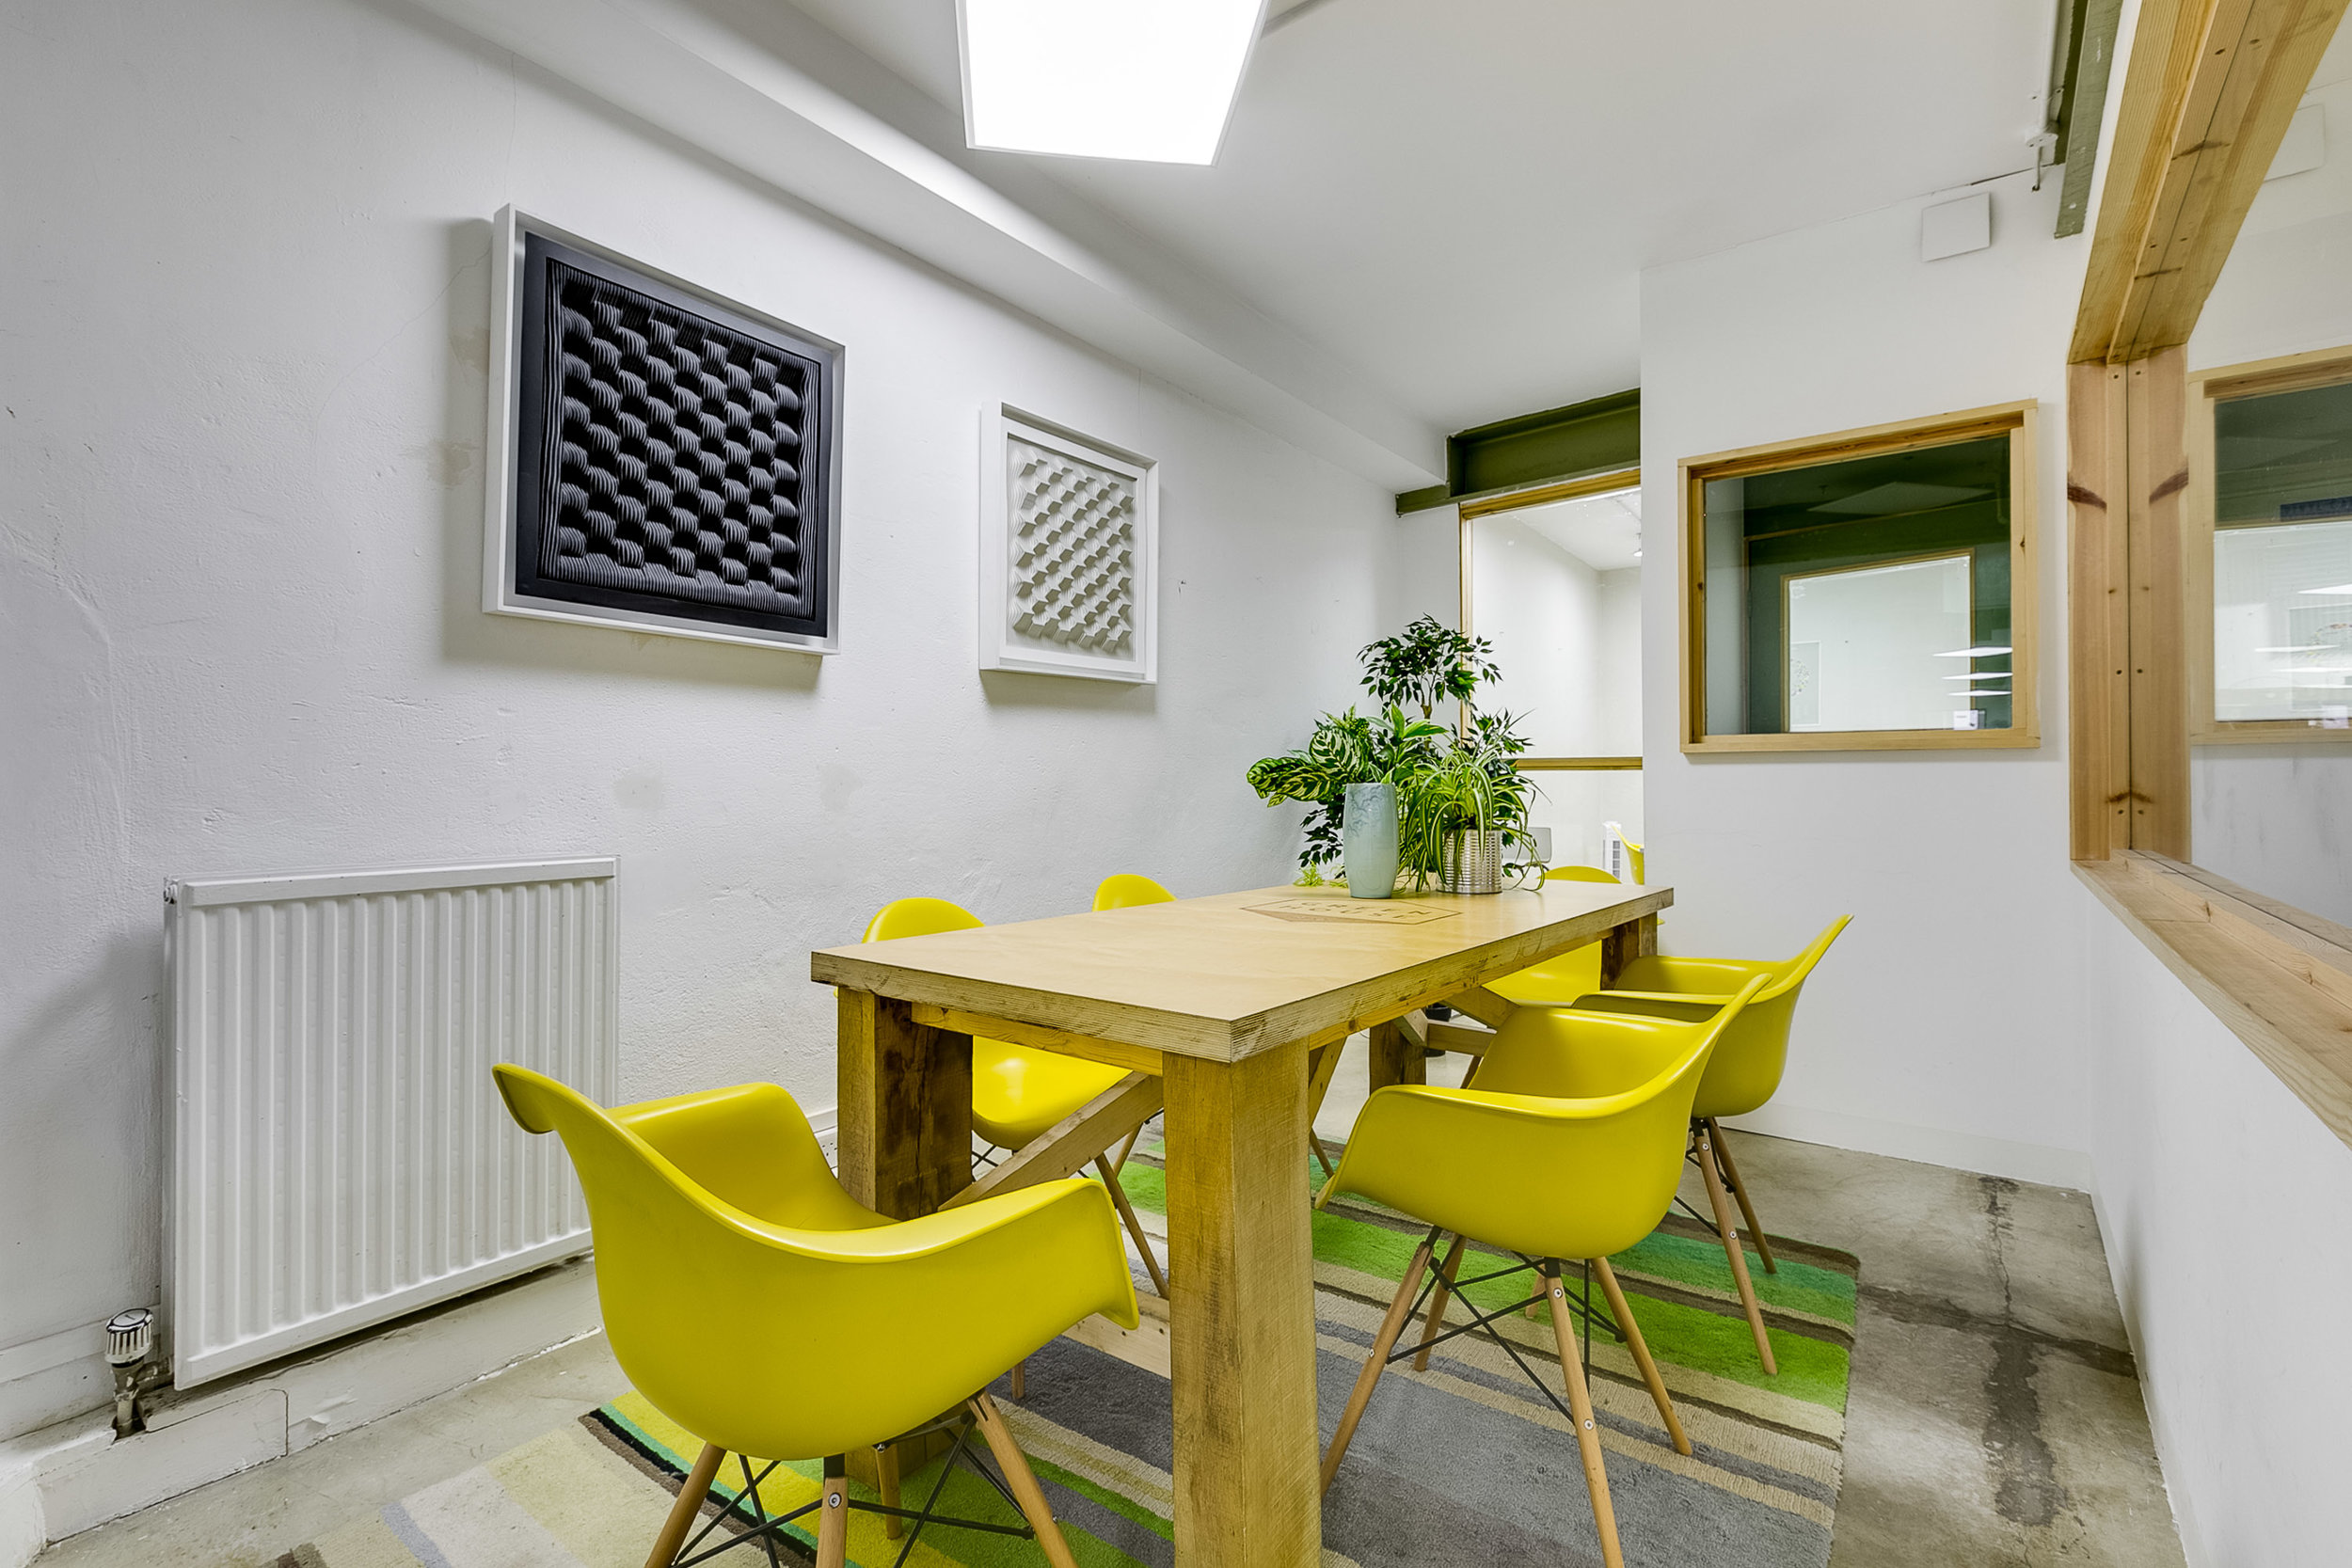 Meeting Rooms - We have multiple meeting room spaces available for hire. Perfect for presentations, group days out of the office and collaborations.